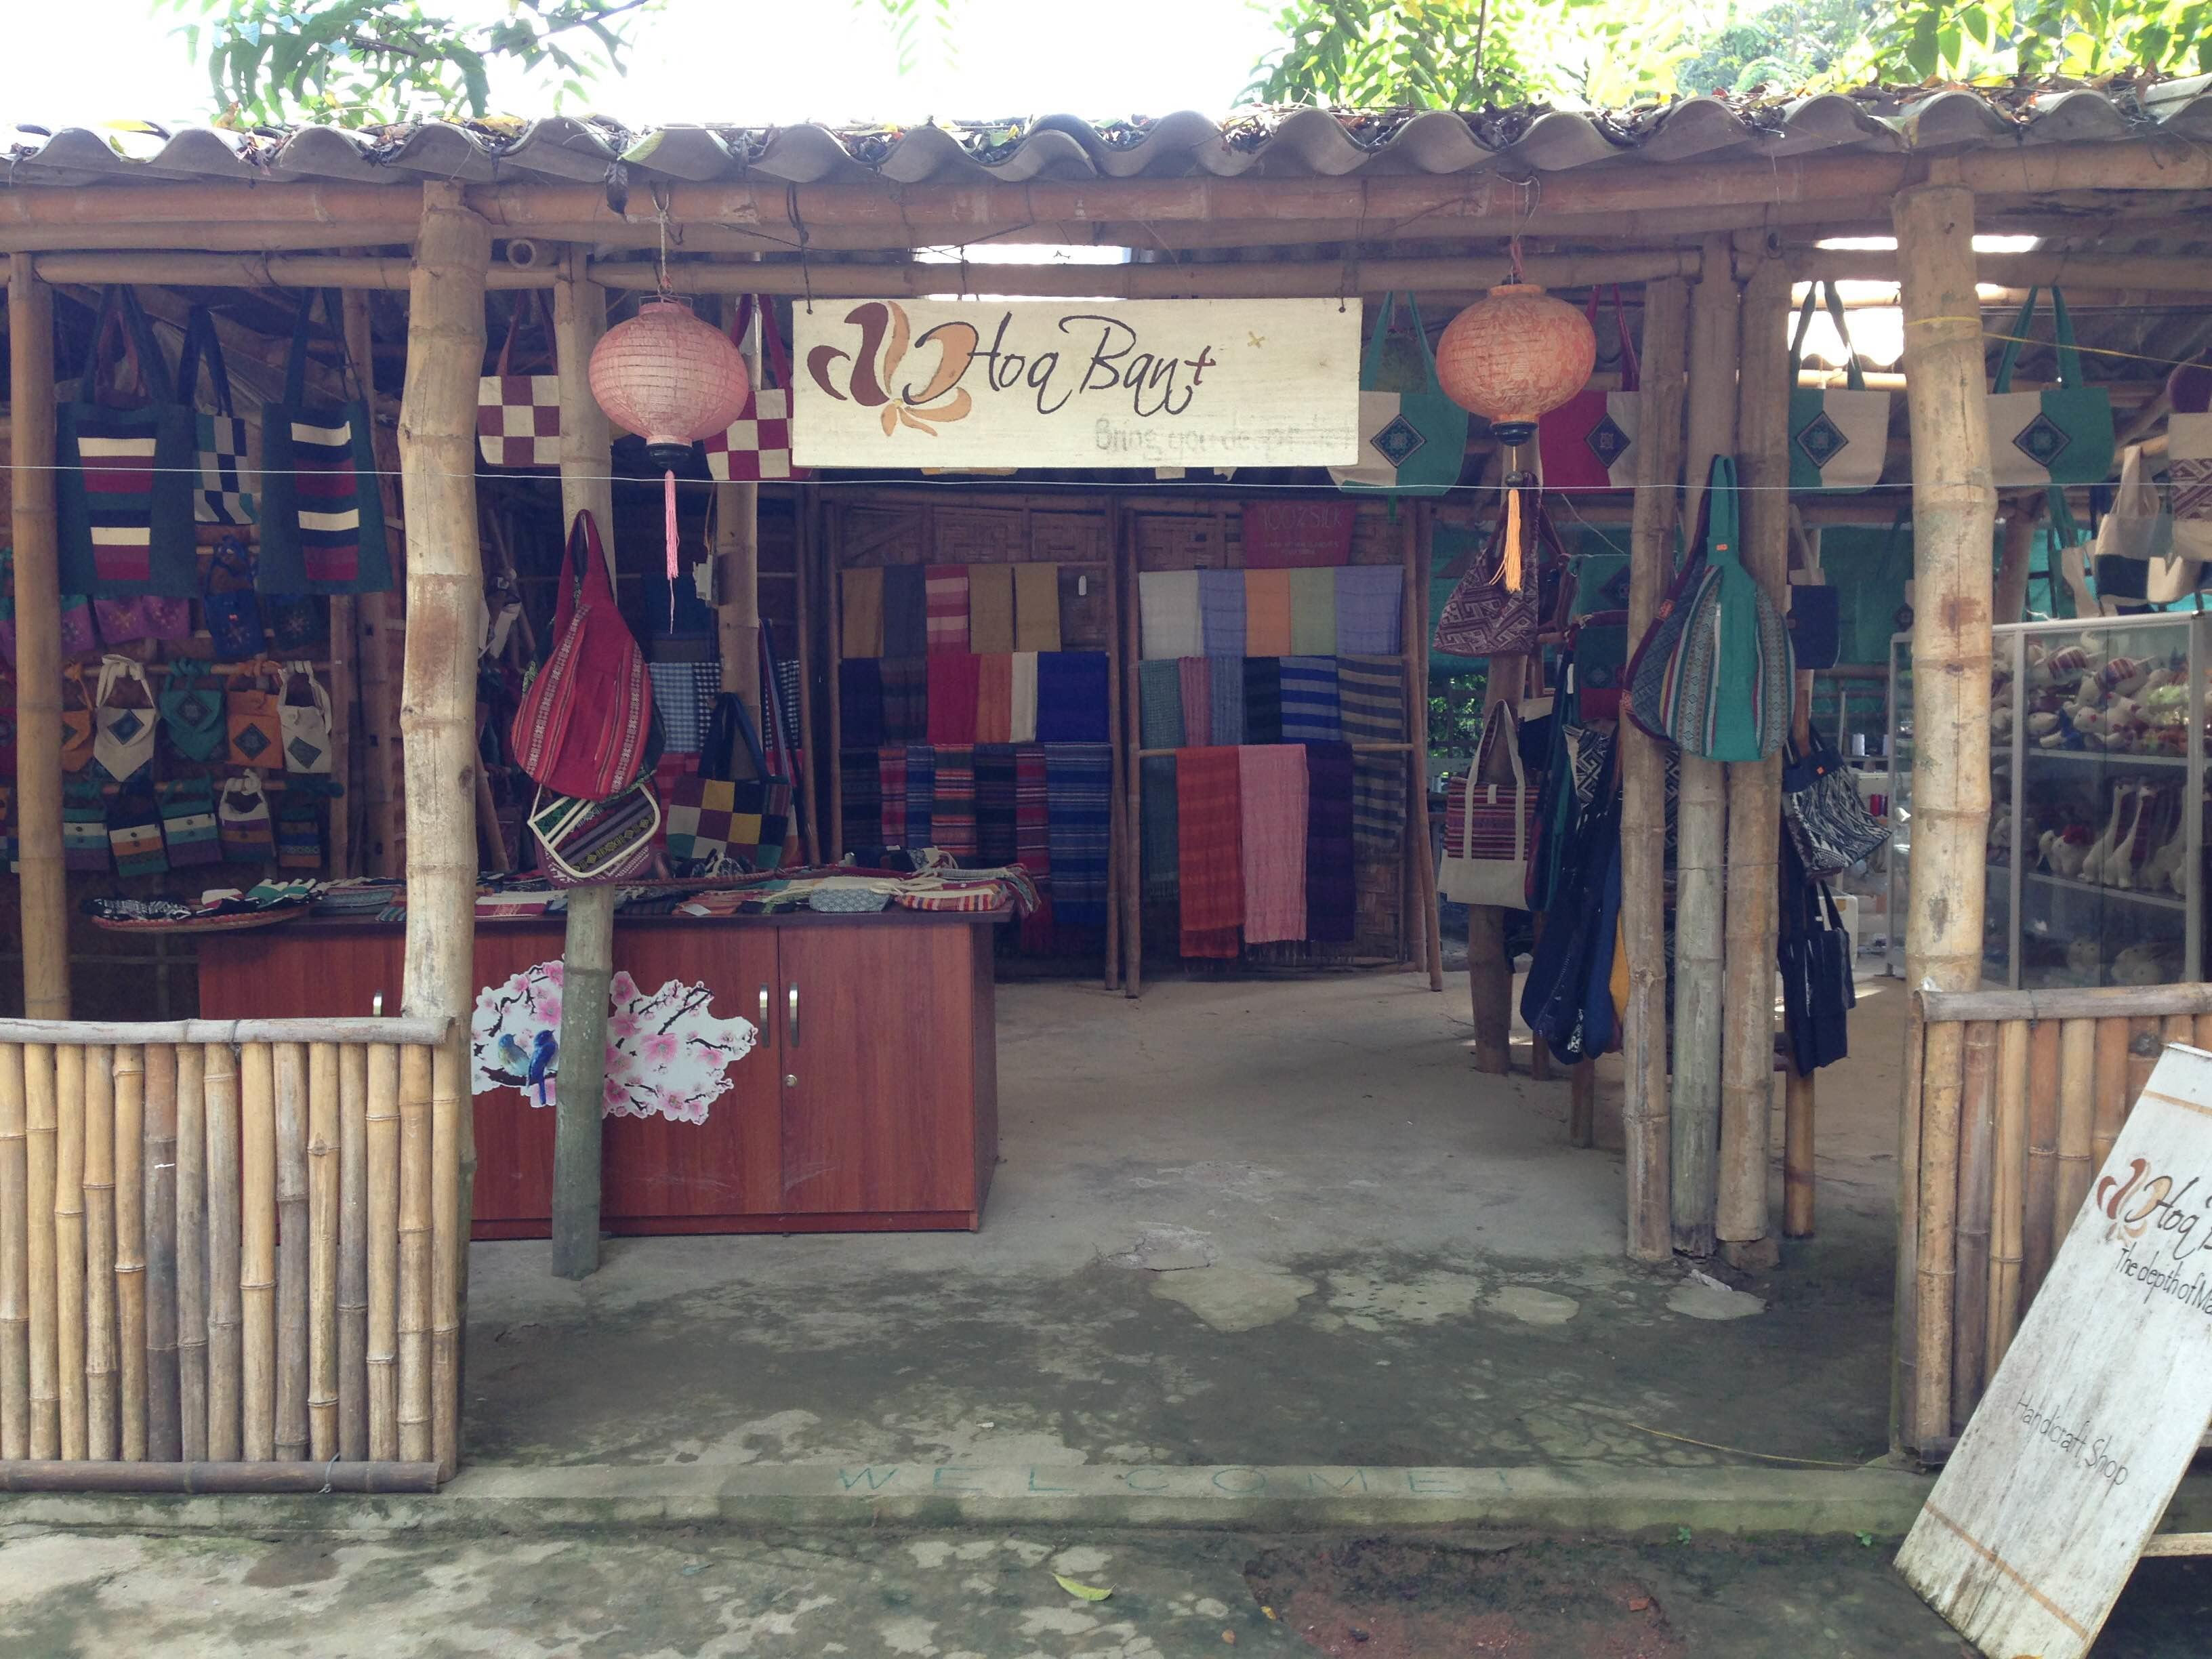 A local shop in Mai Chau Village where Projects Abroad Interns will be placed during their Business Work Experience in Vietnam.